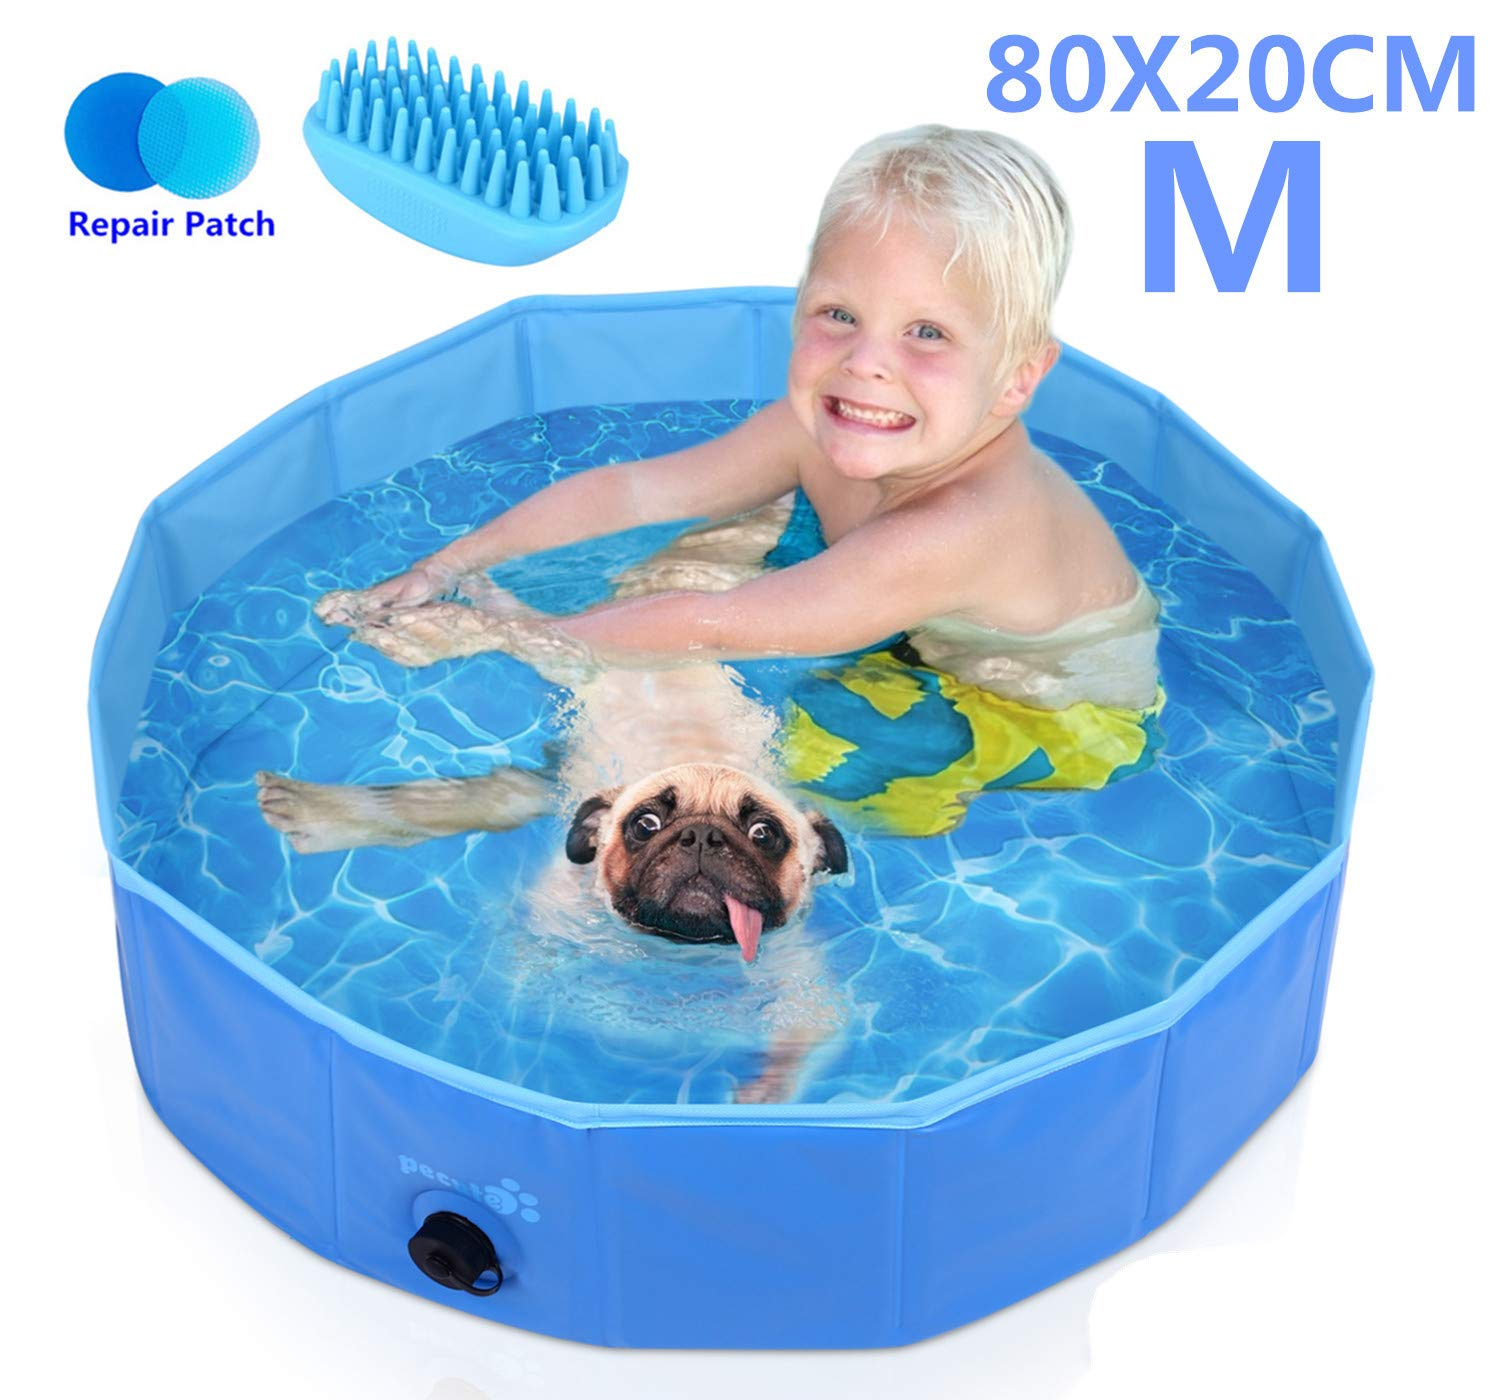 Pecute Dog Pool PVC Outdoor Pool Bathing Tub Portable Pet Playing Pool for Dogs Cats and Kids -(M,Φ32 × H8 Inches)